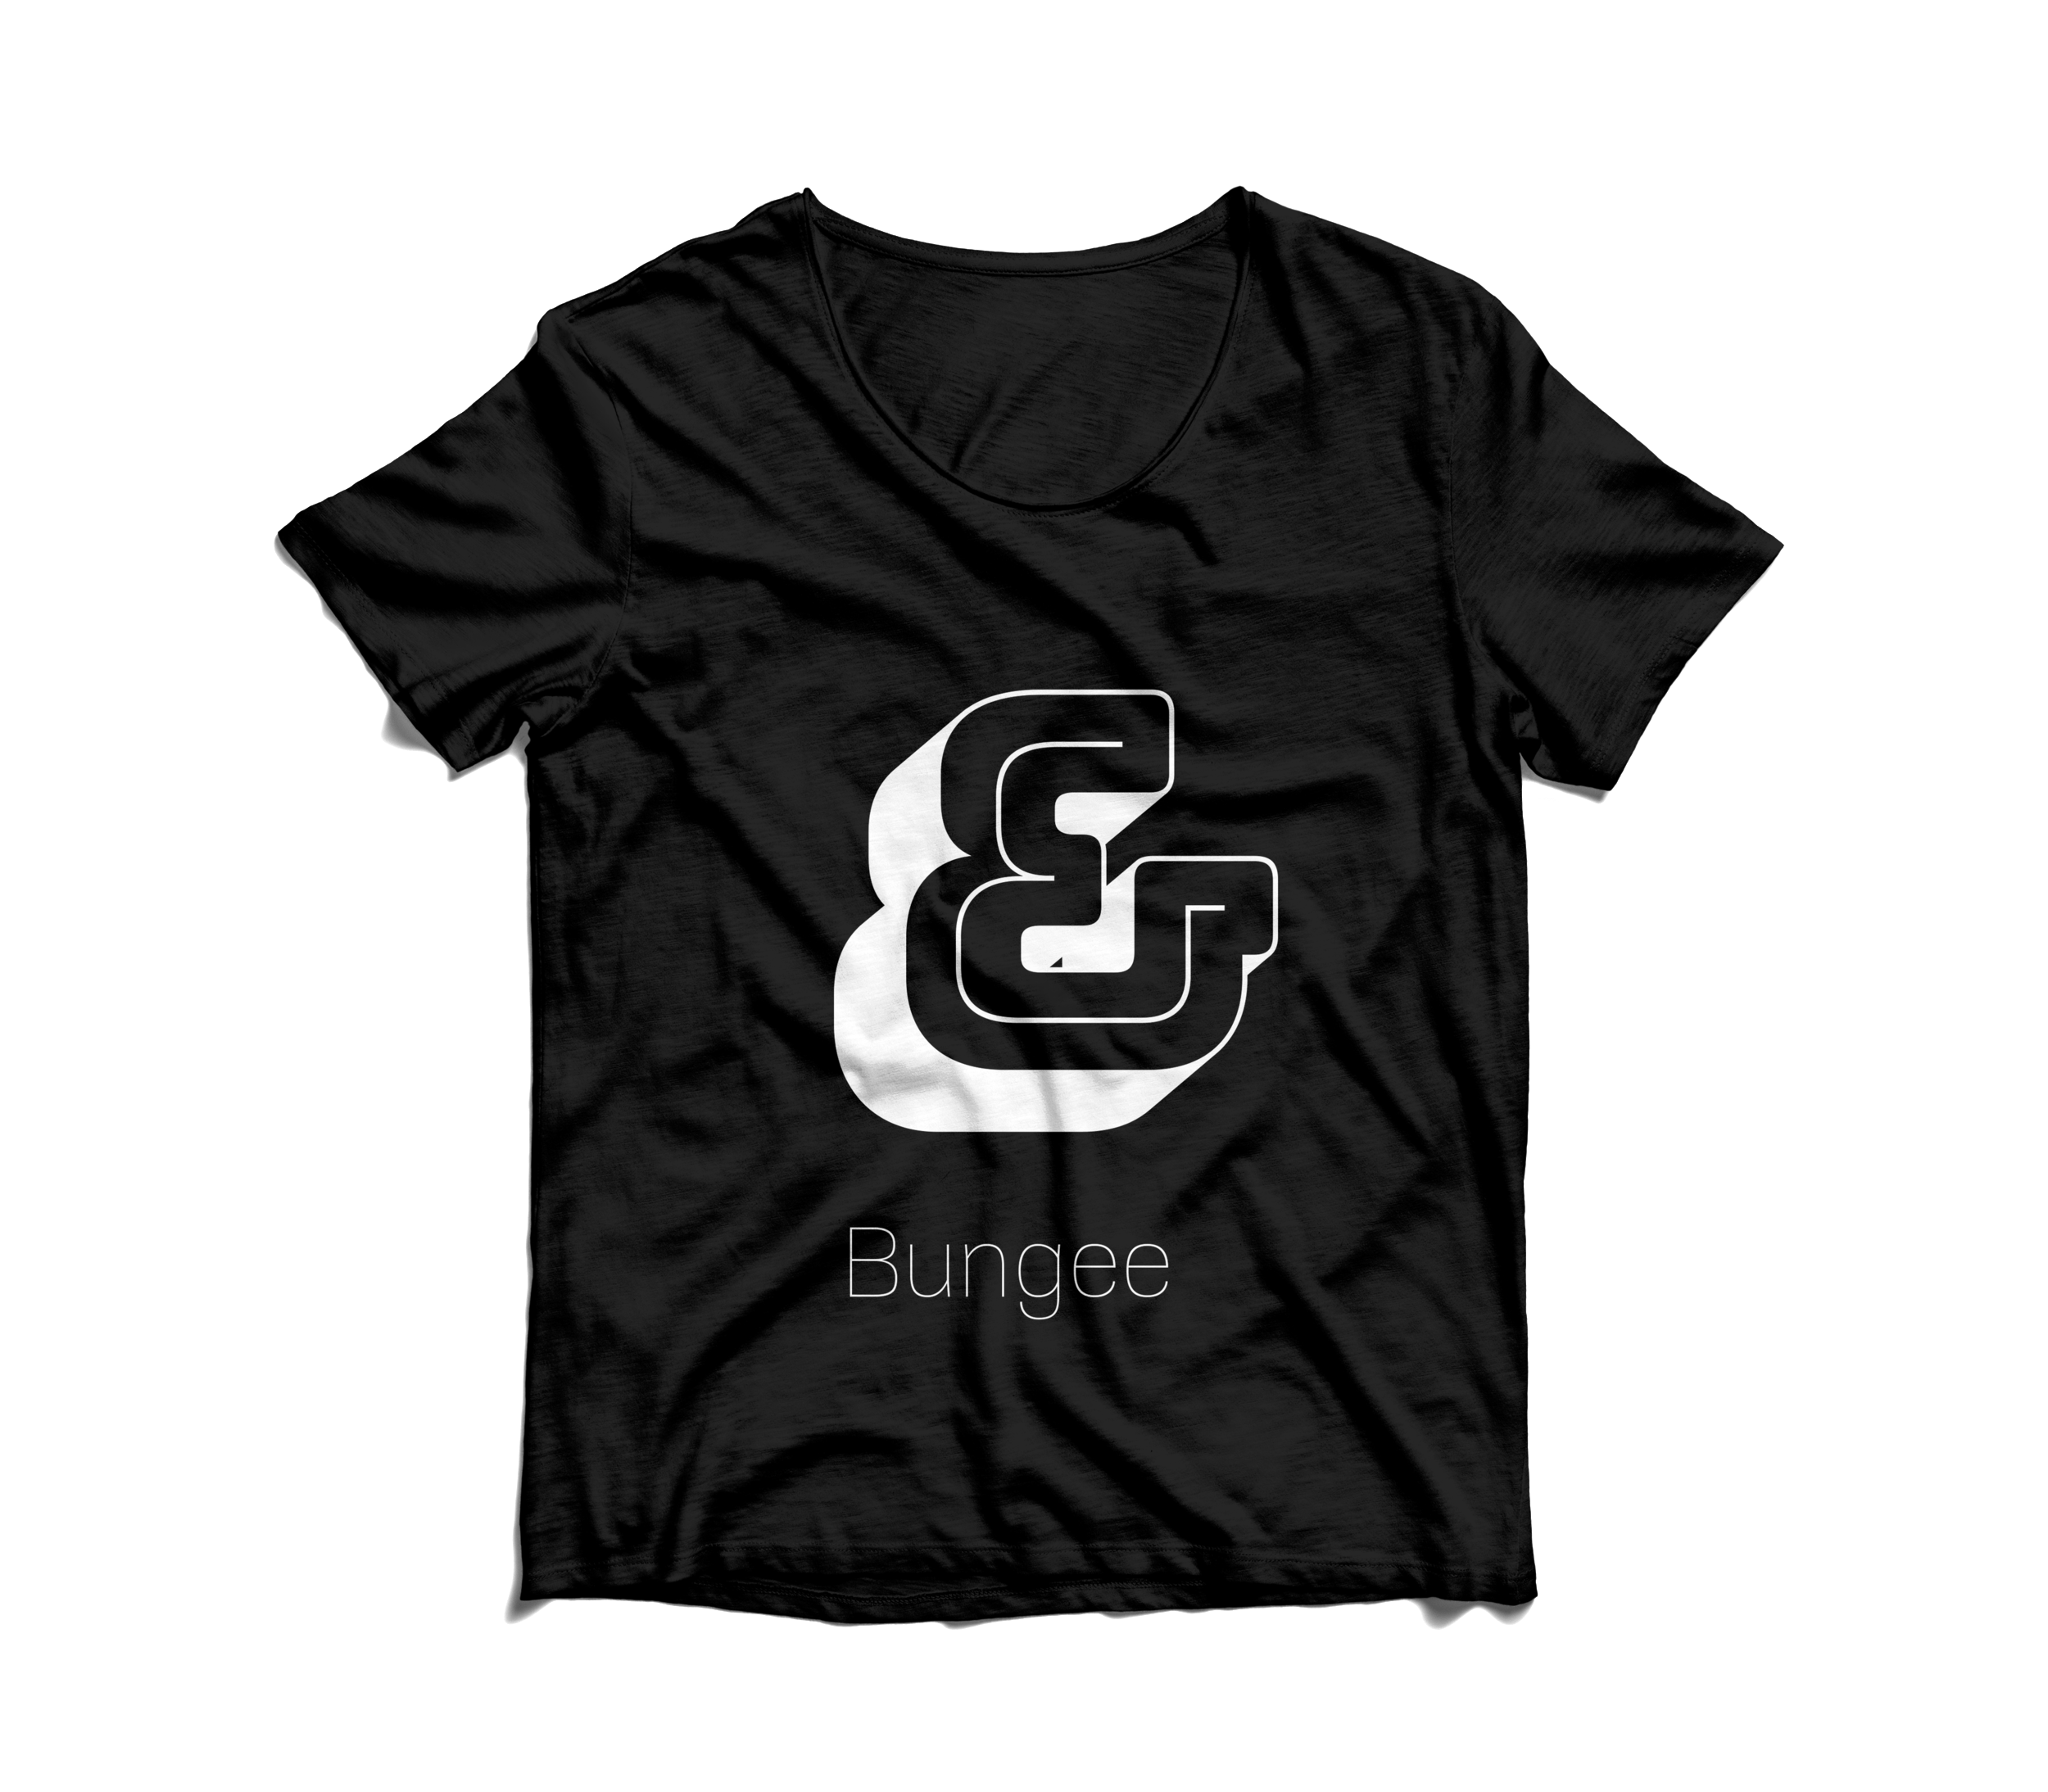 bungee ampersand tshirt.png